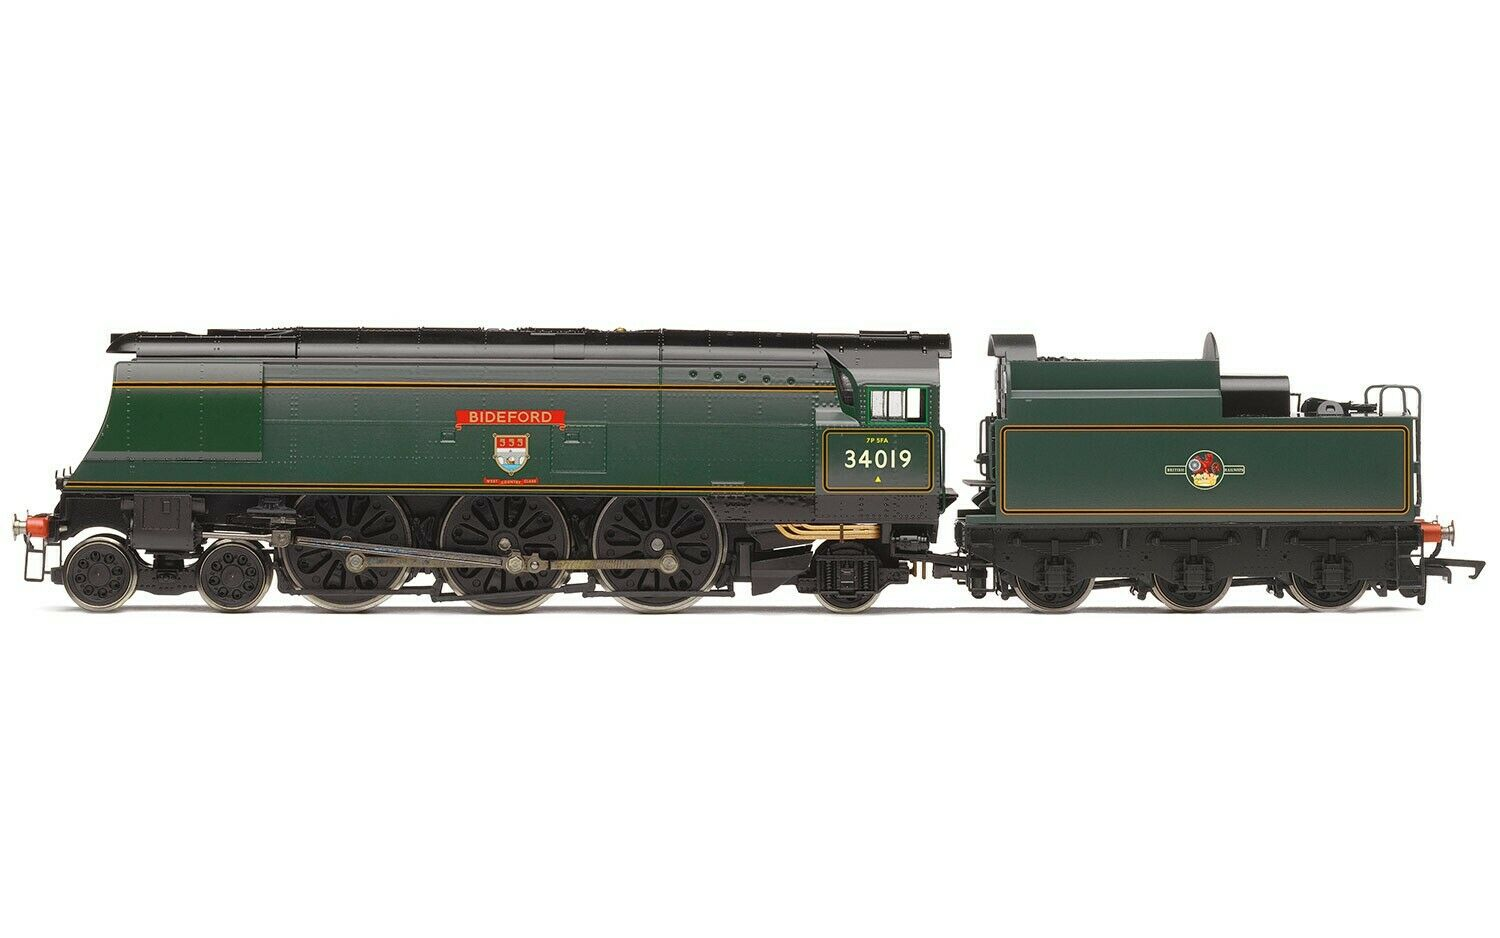 Hornby R3638 Late BR Original West Country classe BIDEFORD 34019 DCC Ready